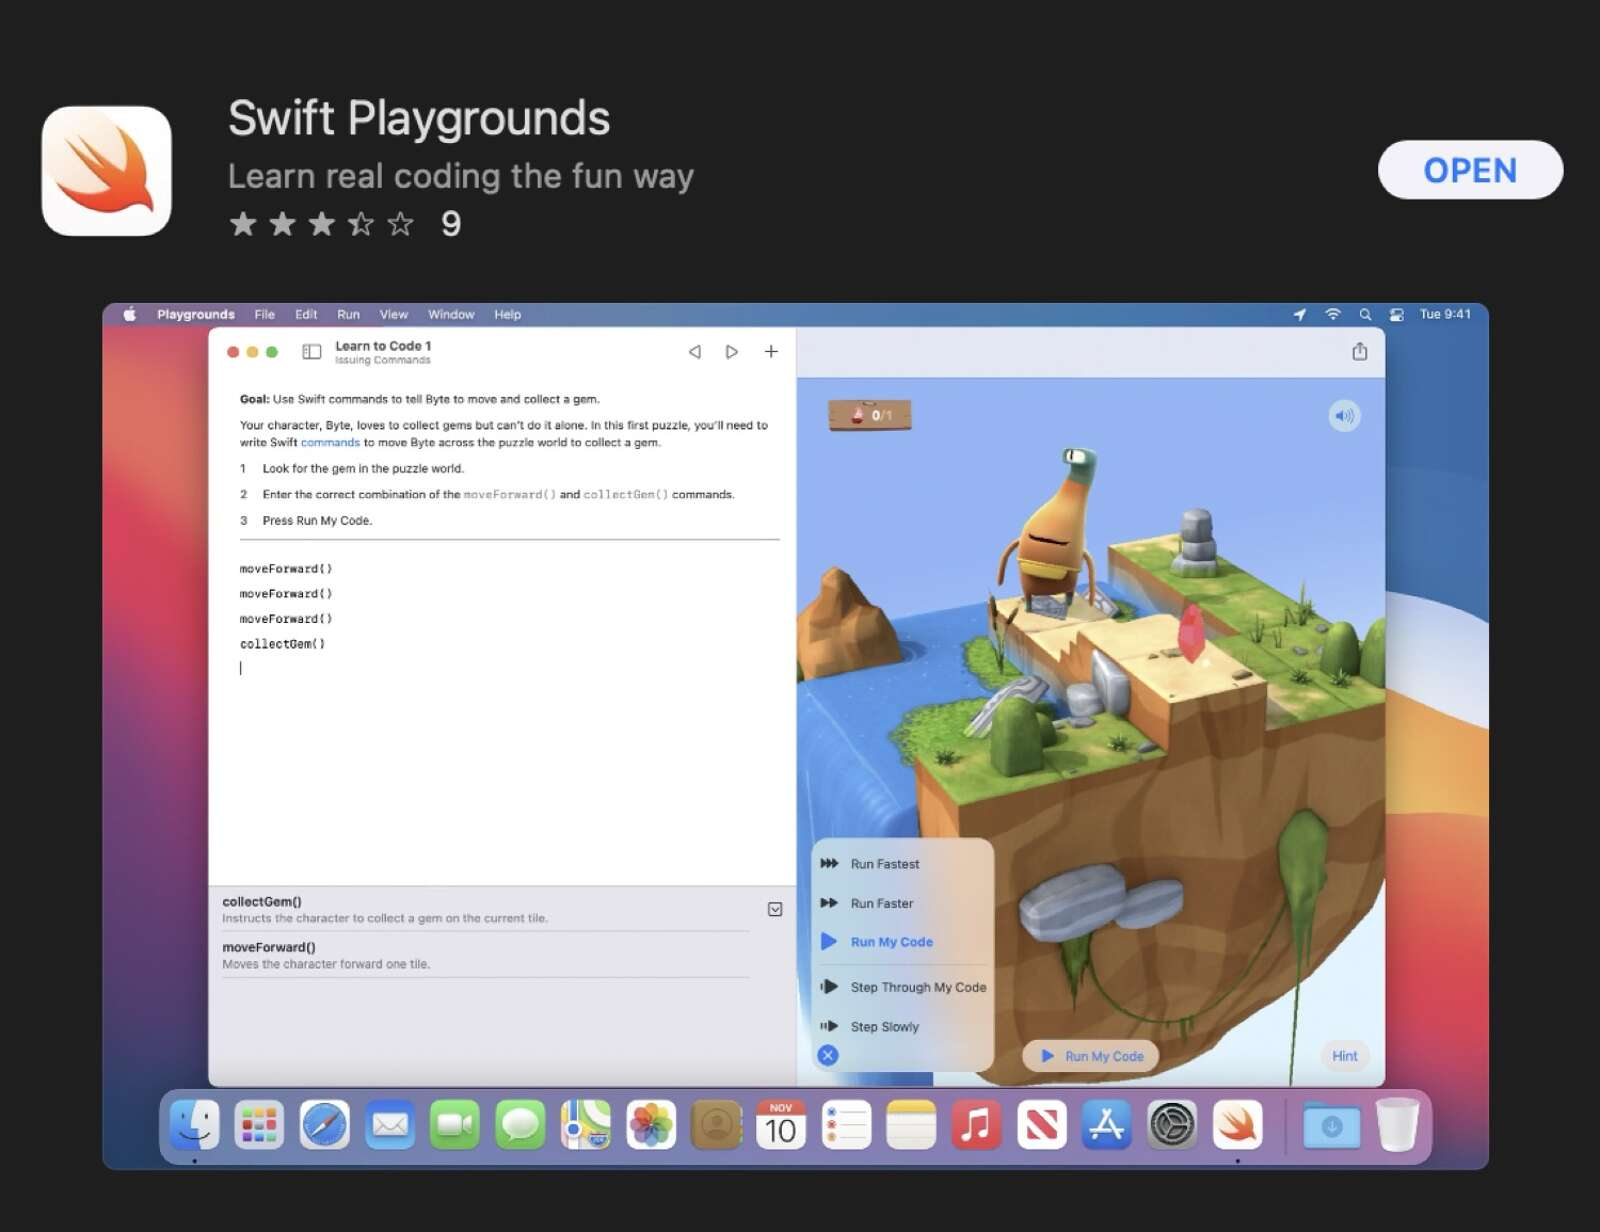 Swift Playgrounds on App Store